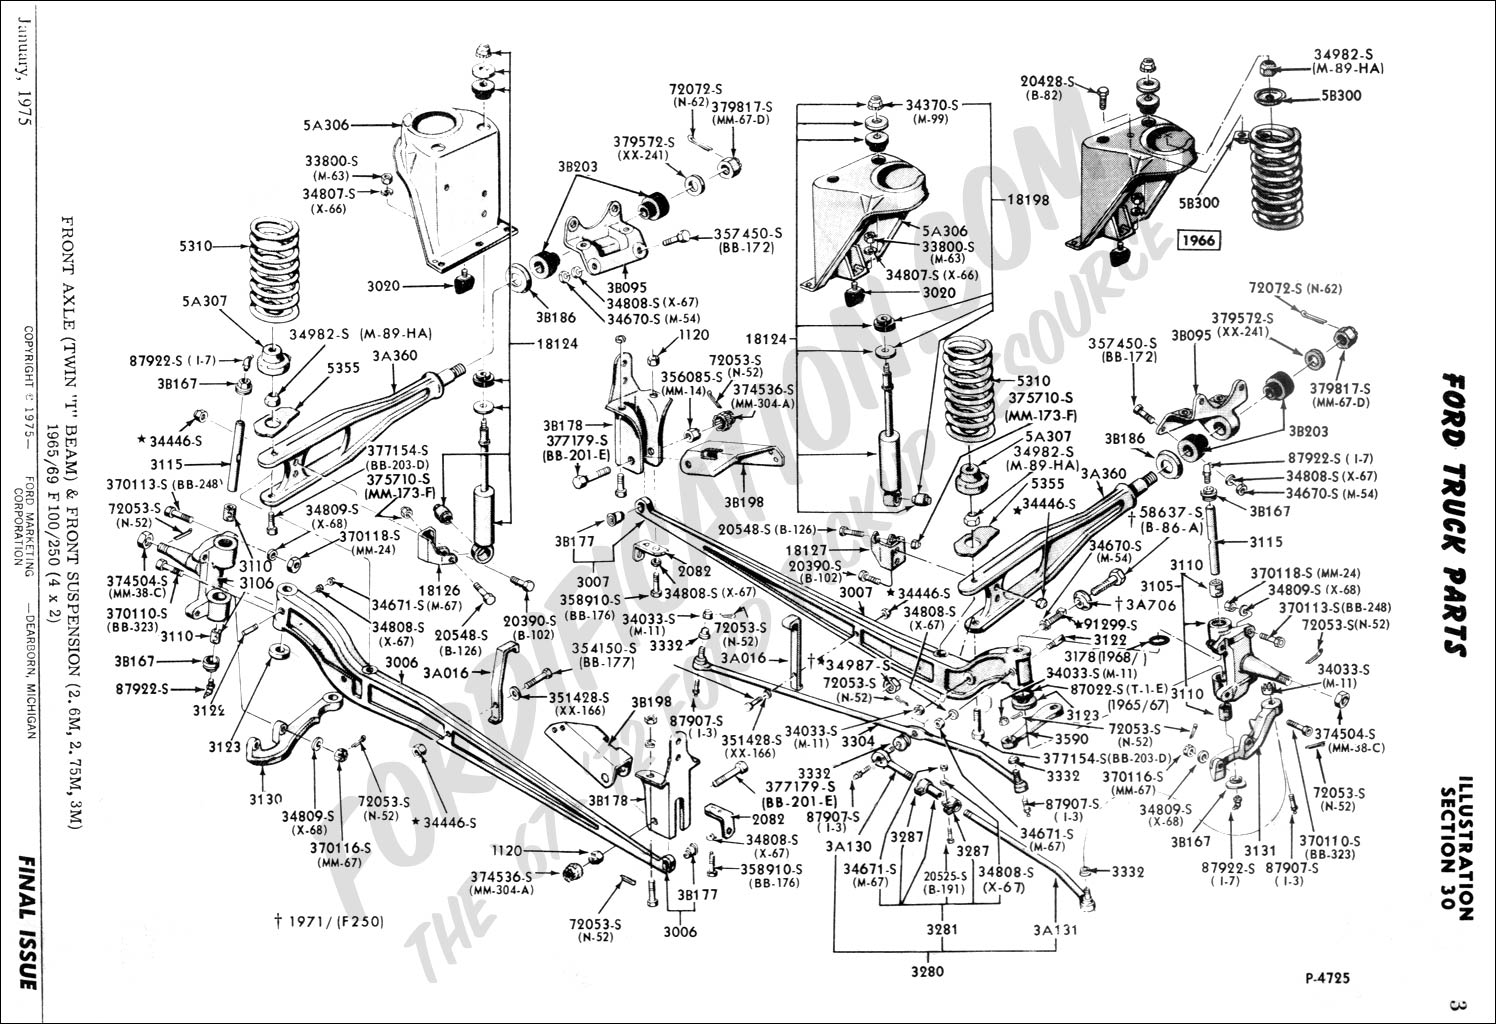 hight resolution of  ford f350 wiring diagram 2003 ford f350 wiring diagram ford e 350 wiring diagrams 2012 ford f350 trailer wiring diagram 2008 ford f350 wiring